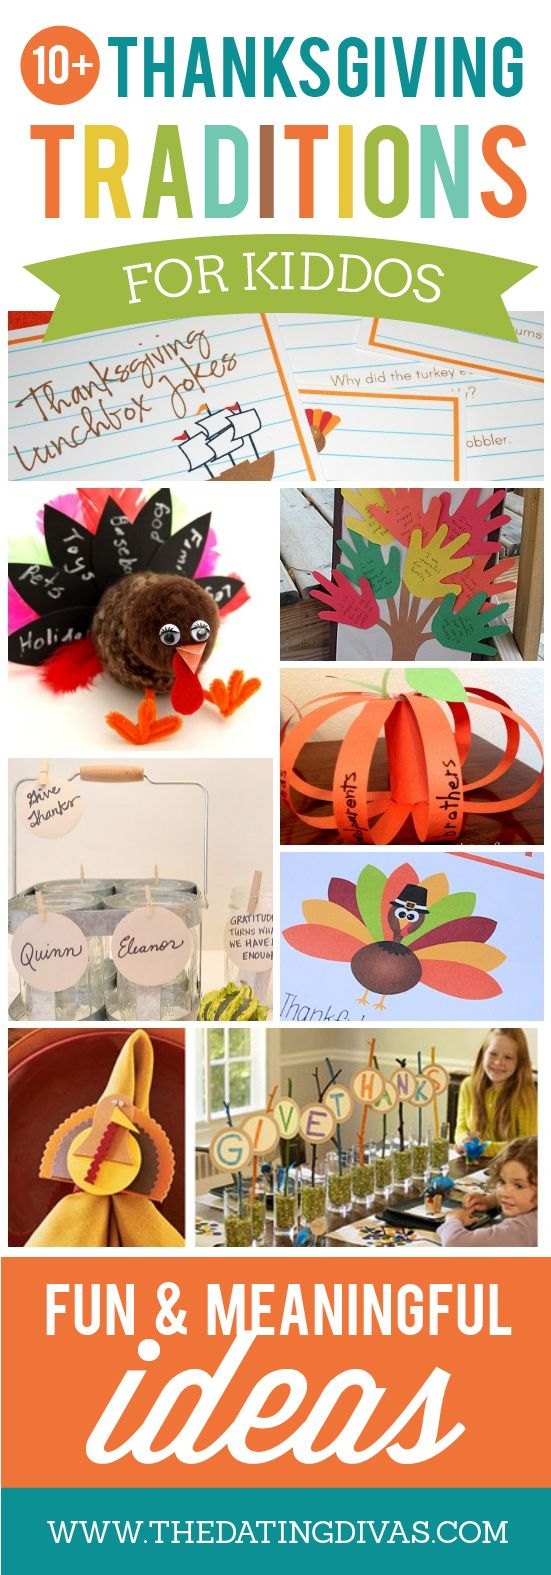 Thanksgiving Traditions and Ideas for Family - From The Dating Divas